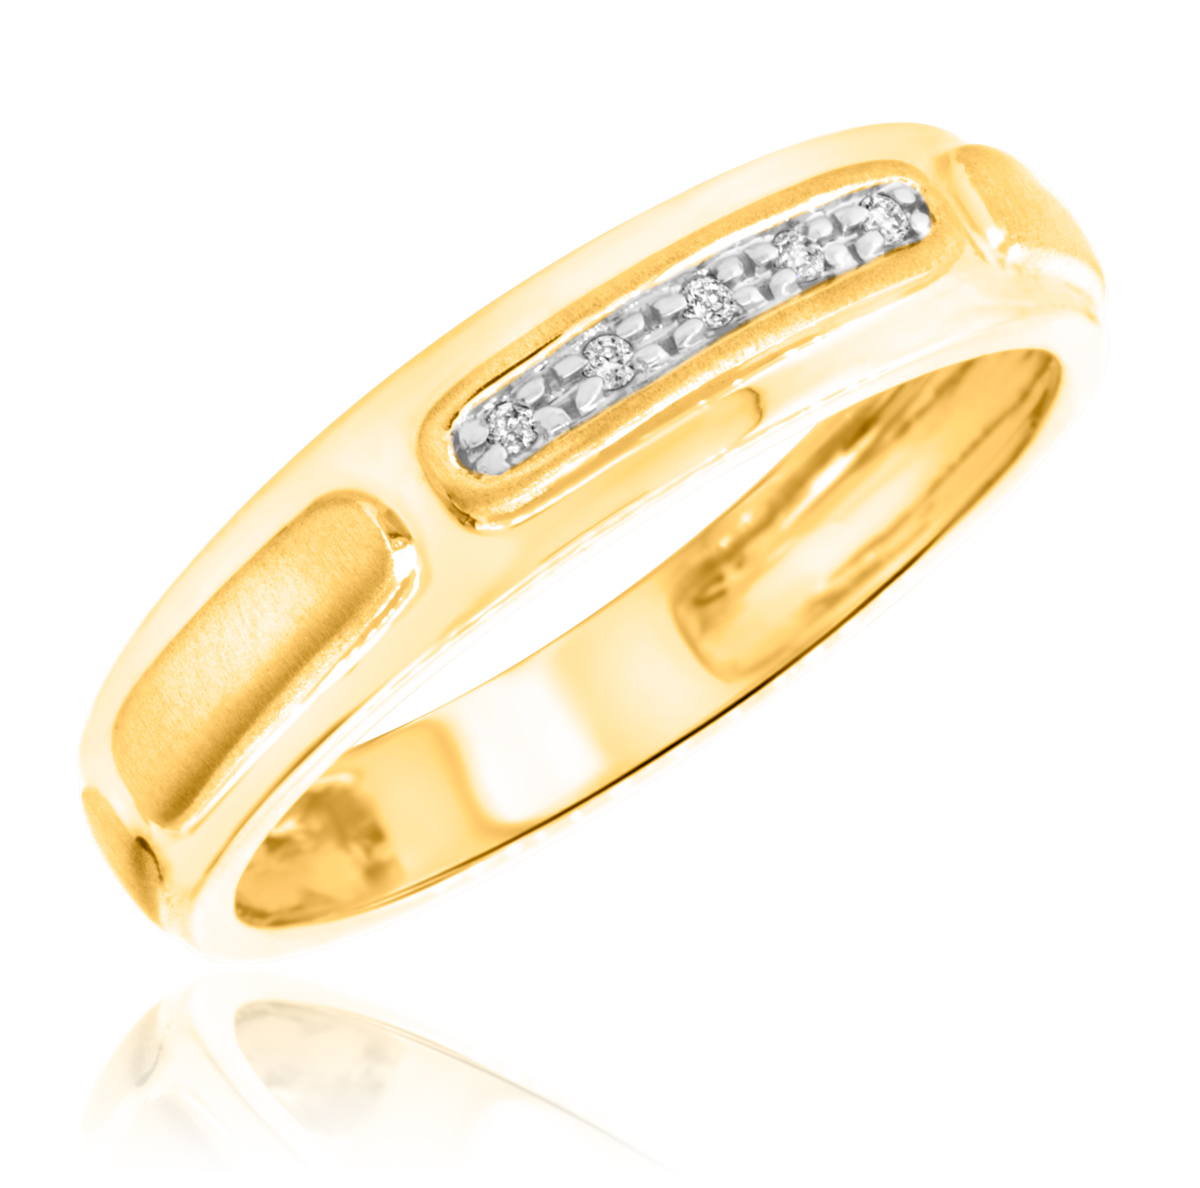 1/20 Carat T.W. Round Cut Diamond Mens Wedding Band 14K Yellow Gold- Size 8